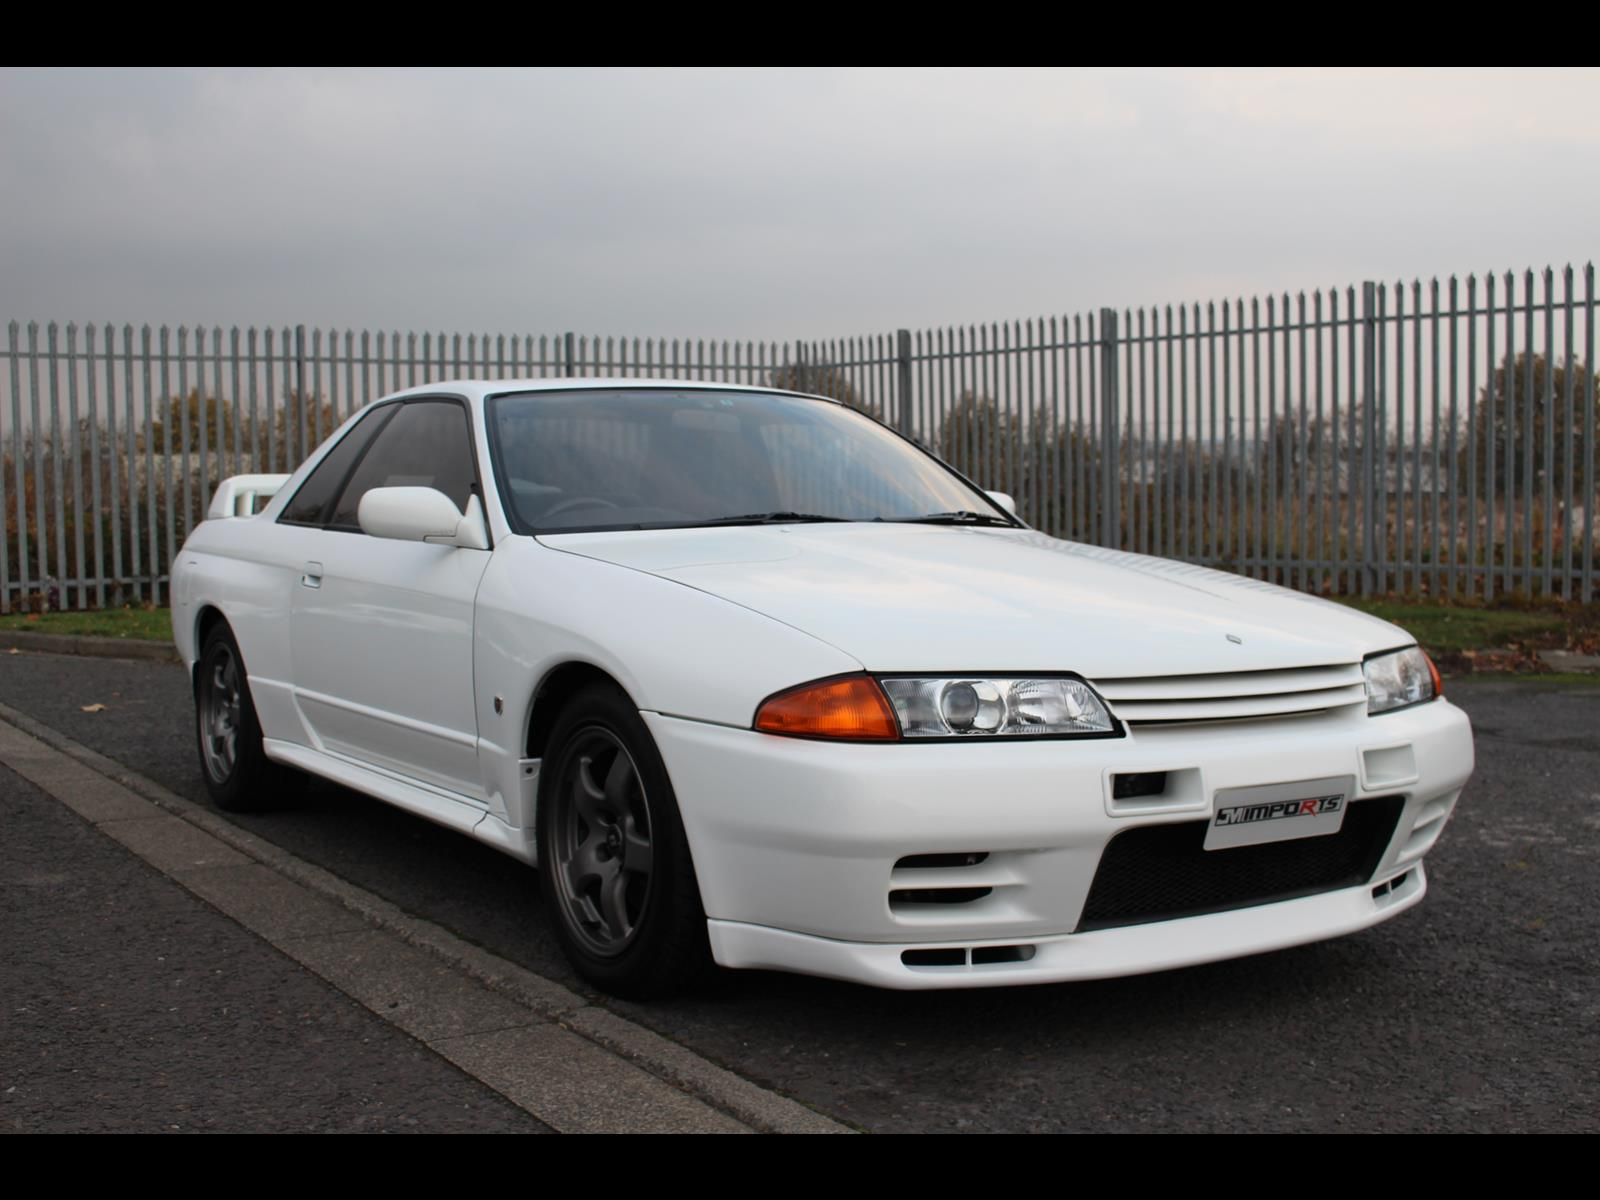 Nissan Gtr Interior >> 1994 Nissan Skyline R32 GTR 5 Speed Manual - JM-Imports